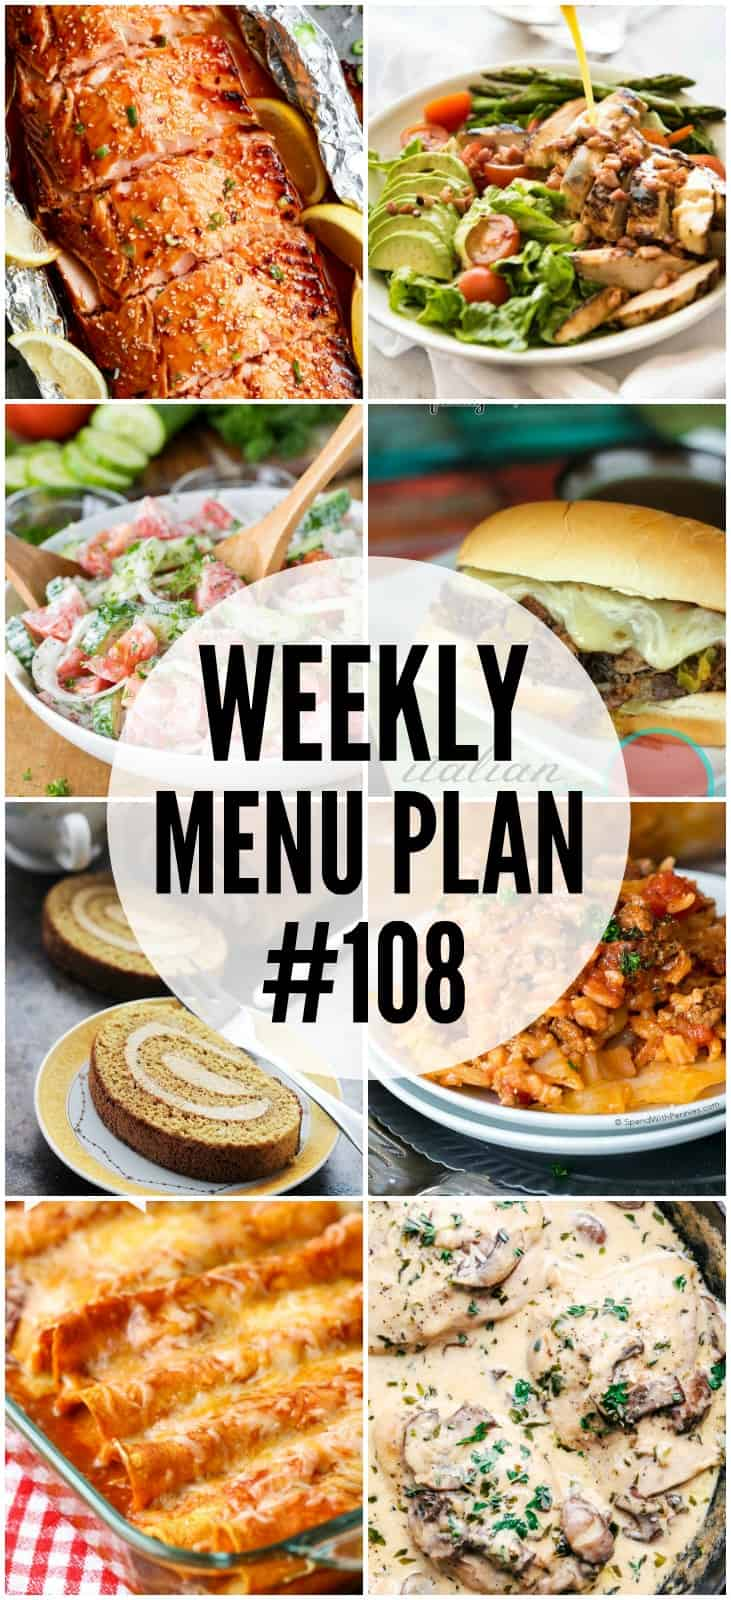 WEEKLY MENU PLAN (#108) - Seven talented bloggers bringing you a full week of recipes including dinner, sides dishes, and desserts!